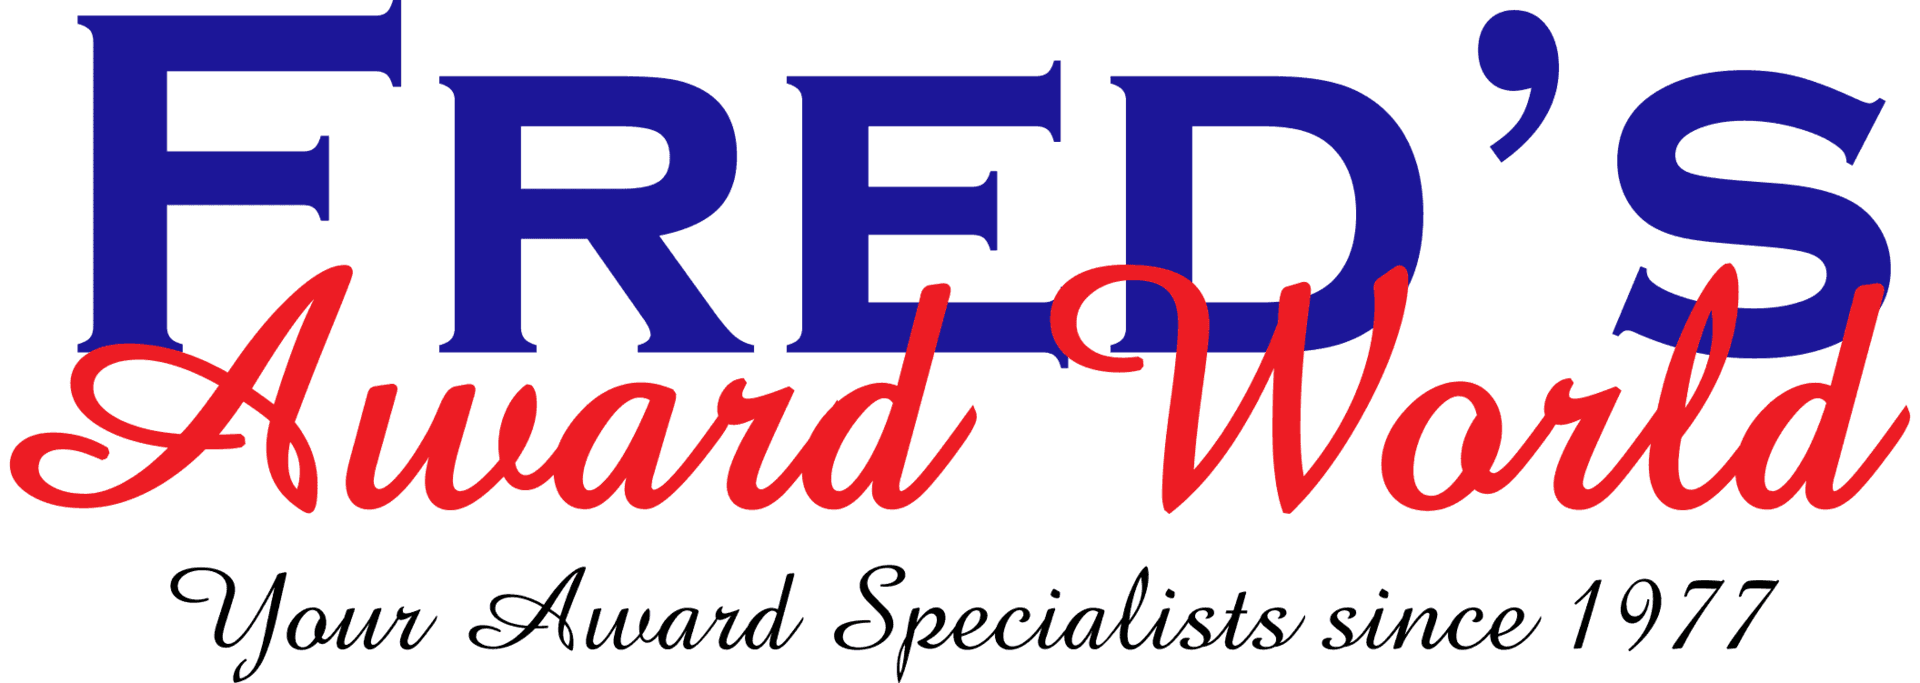 Fred's Award World - logo